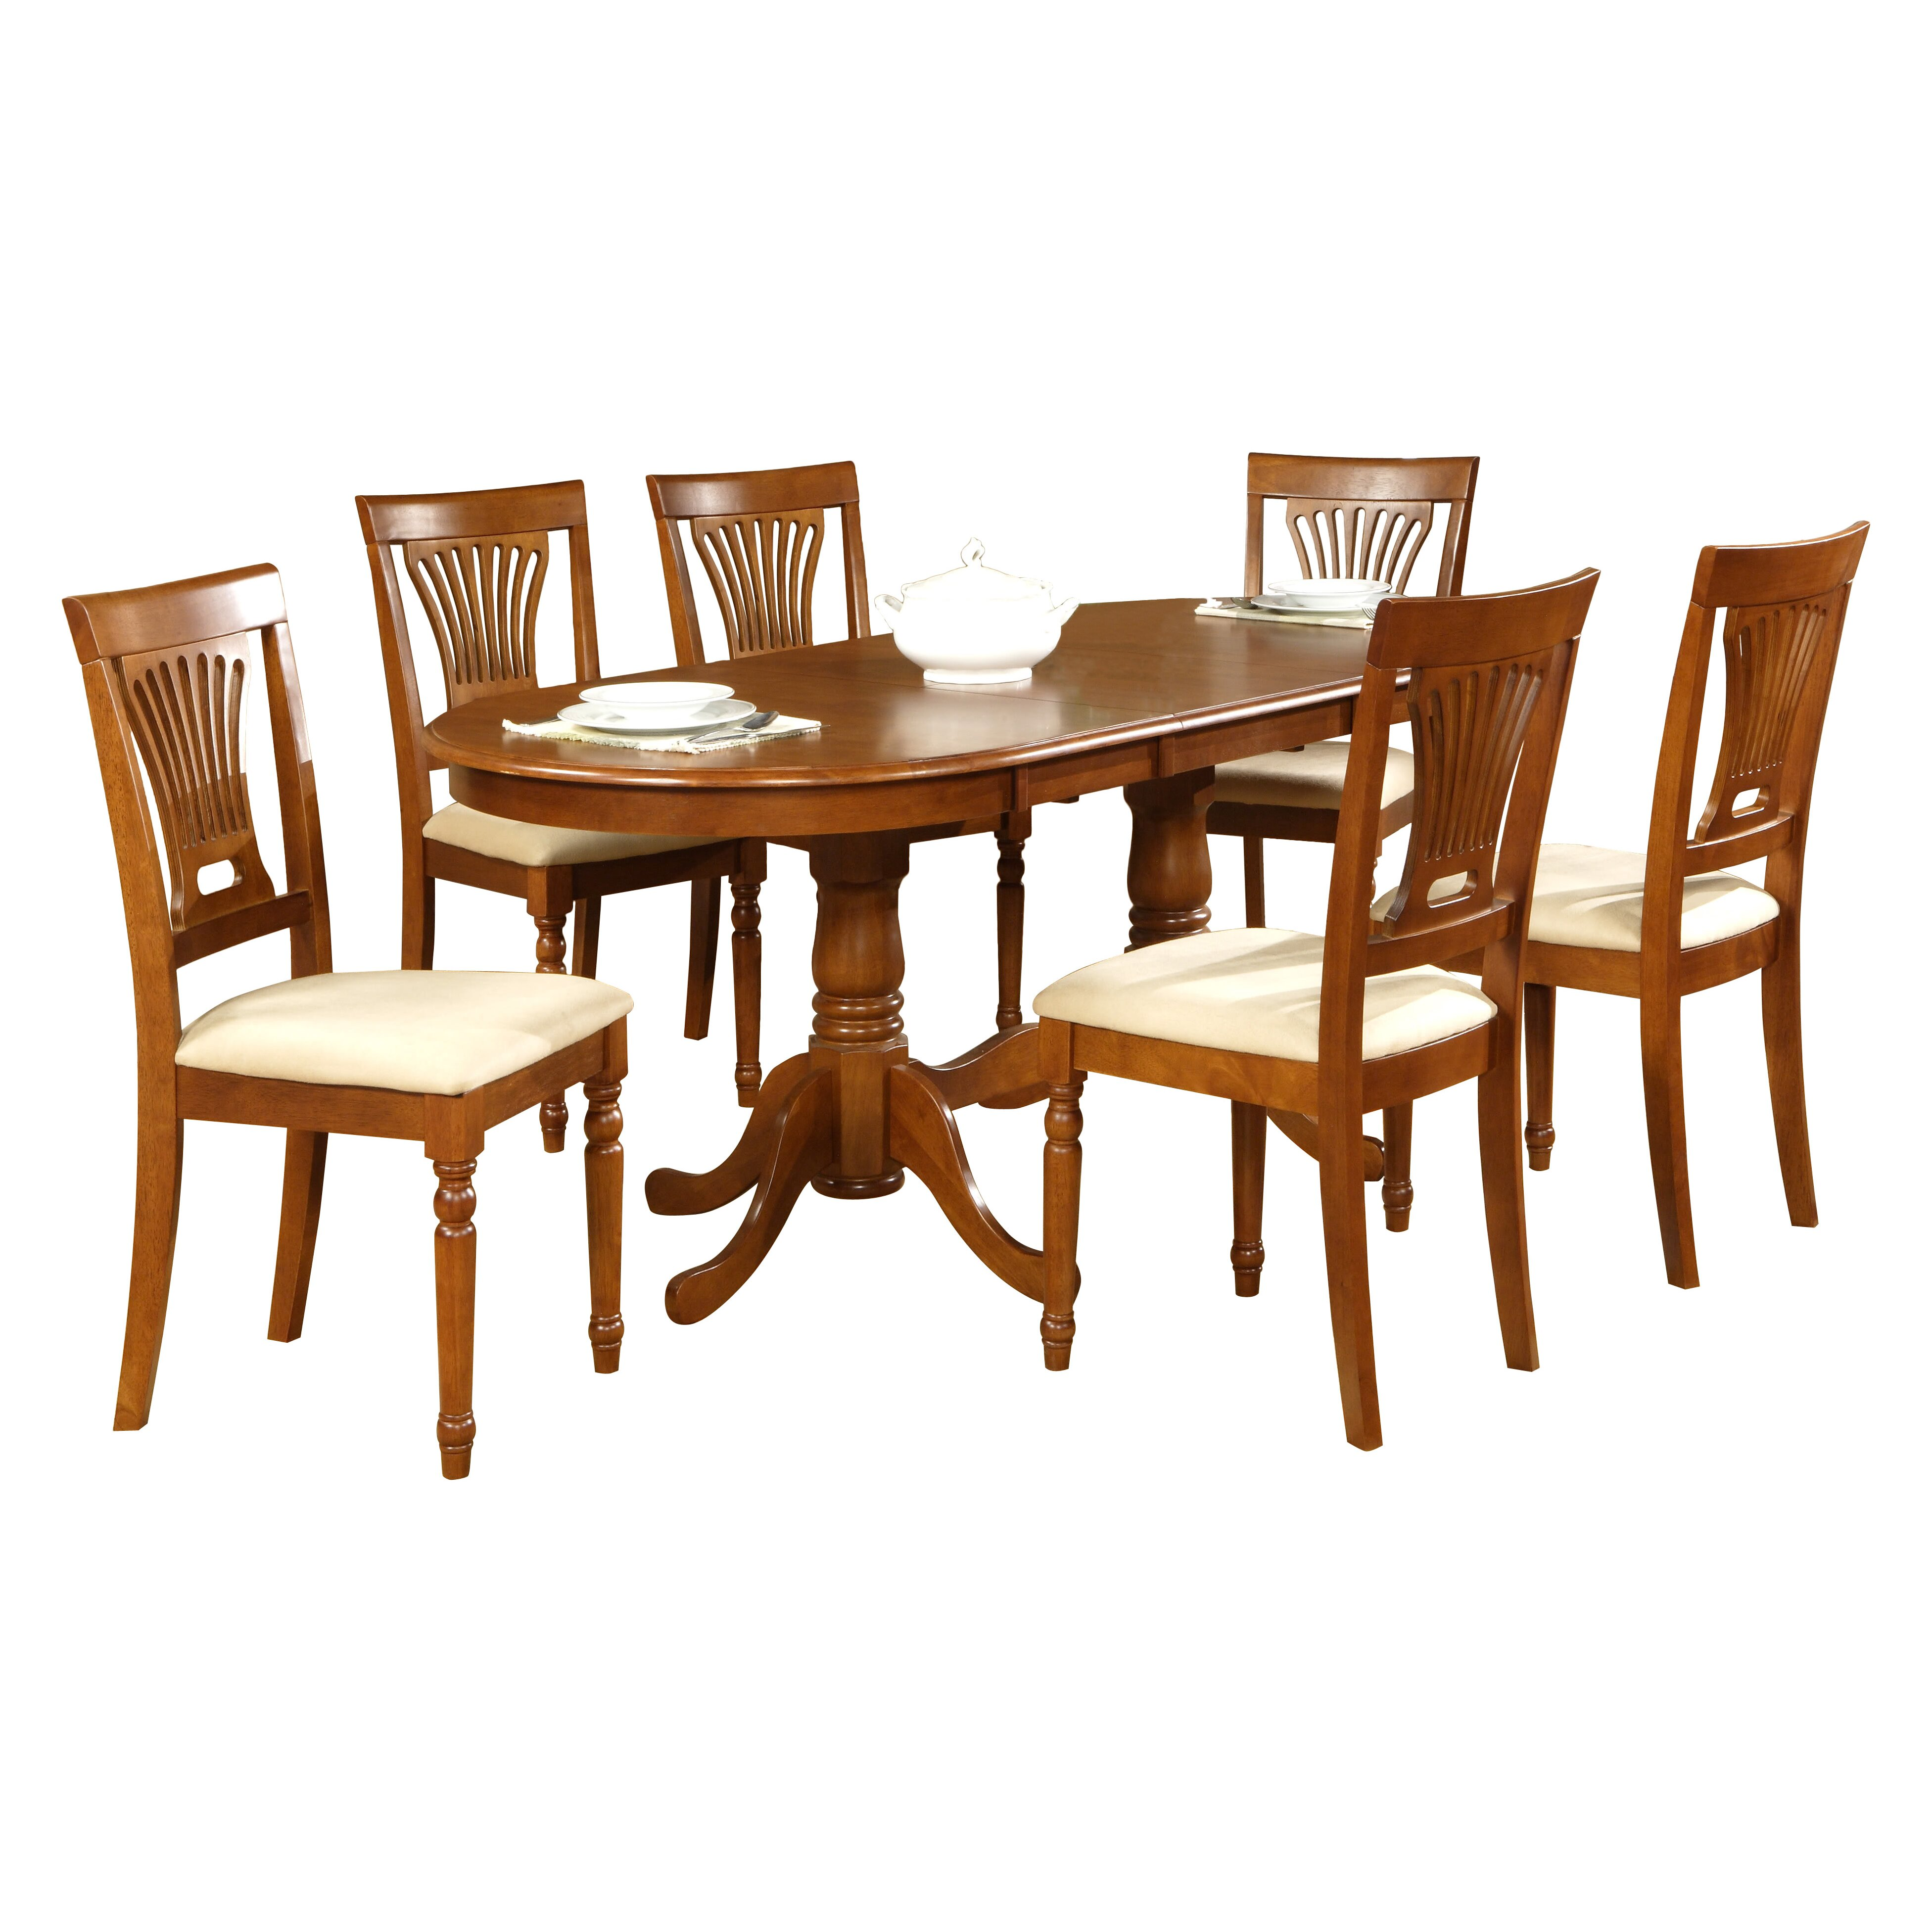 Kitchen & Dining Furniture Dining Sets Darby Home Co SKU: DBHC4541. Full resolution  portrait, nominally Width 3905 Height 3905 pixels, portrait with #401B07.